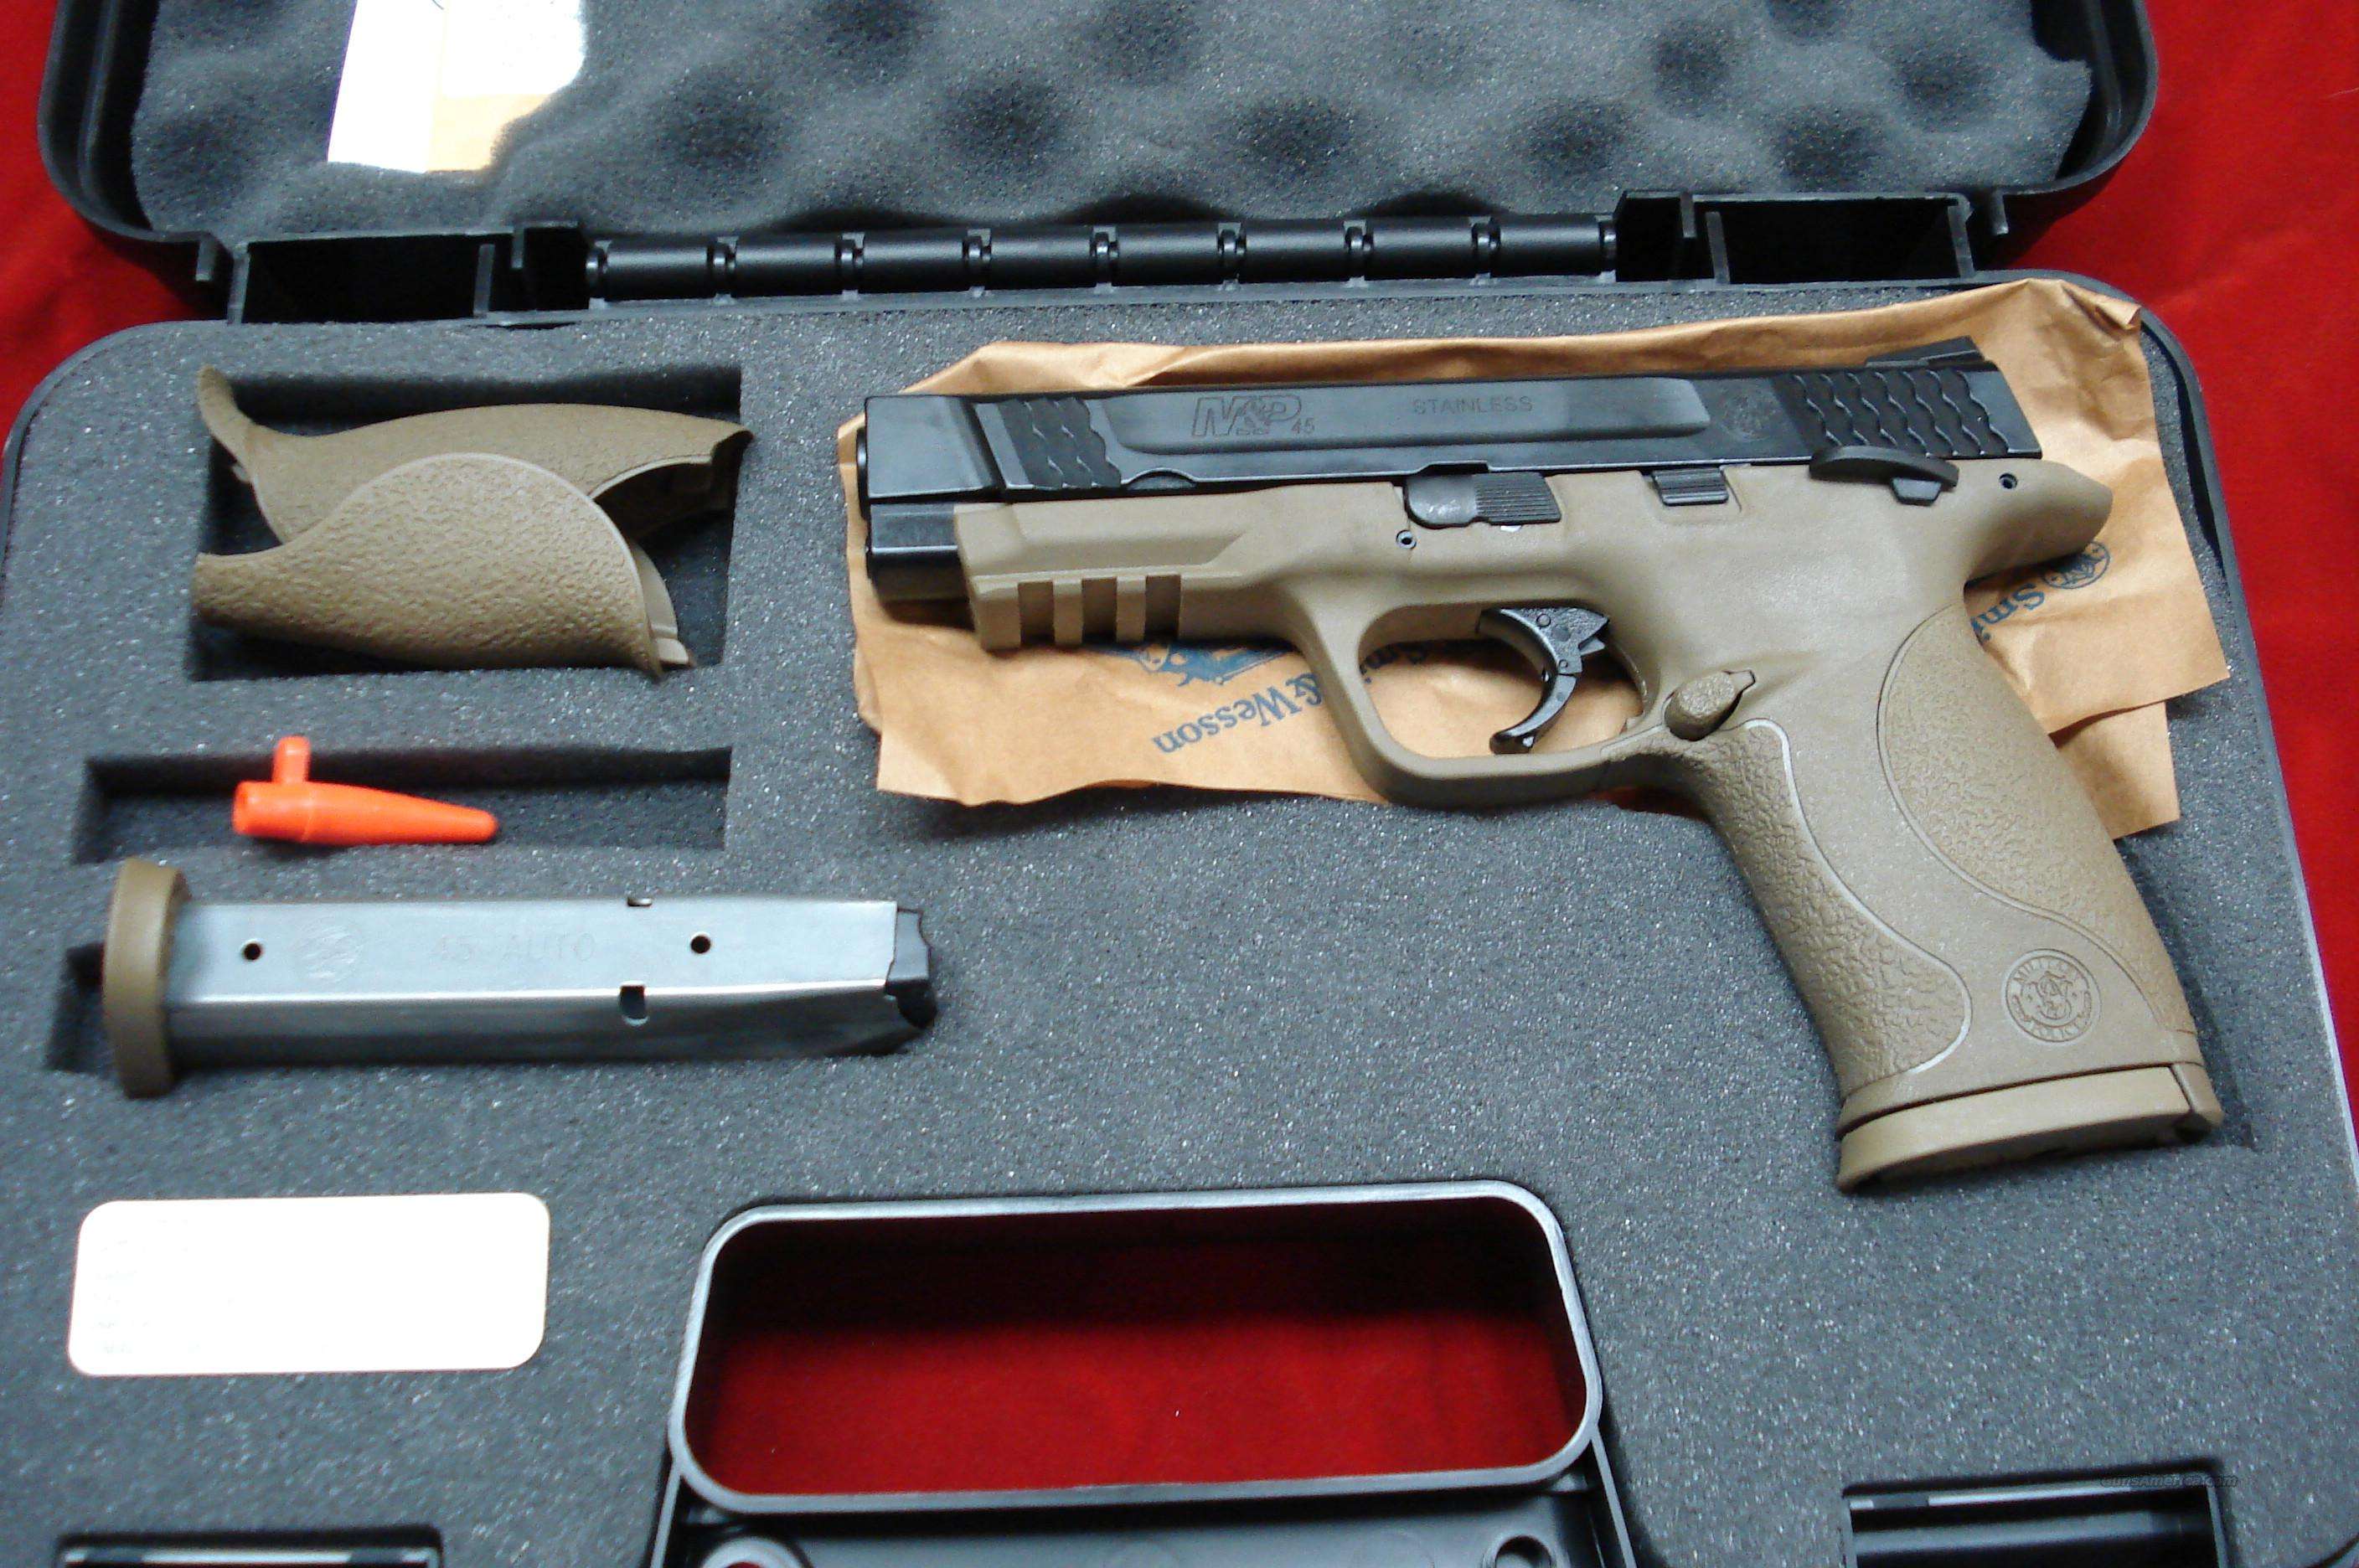 SMITH AND WESSON M&P 45ACP DESERT TAN WITH NIGHT SIGHTS AND THUMB SAFEETY NEW   Guns > Pistols > Smith & Wesson Pistols - Autos > Polymer Frame